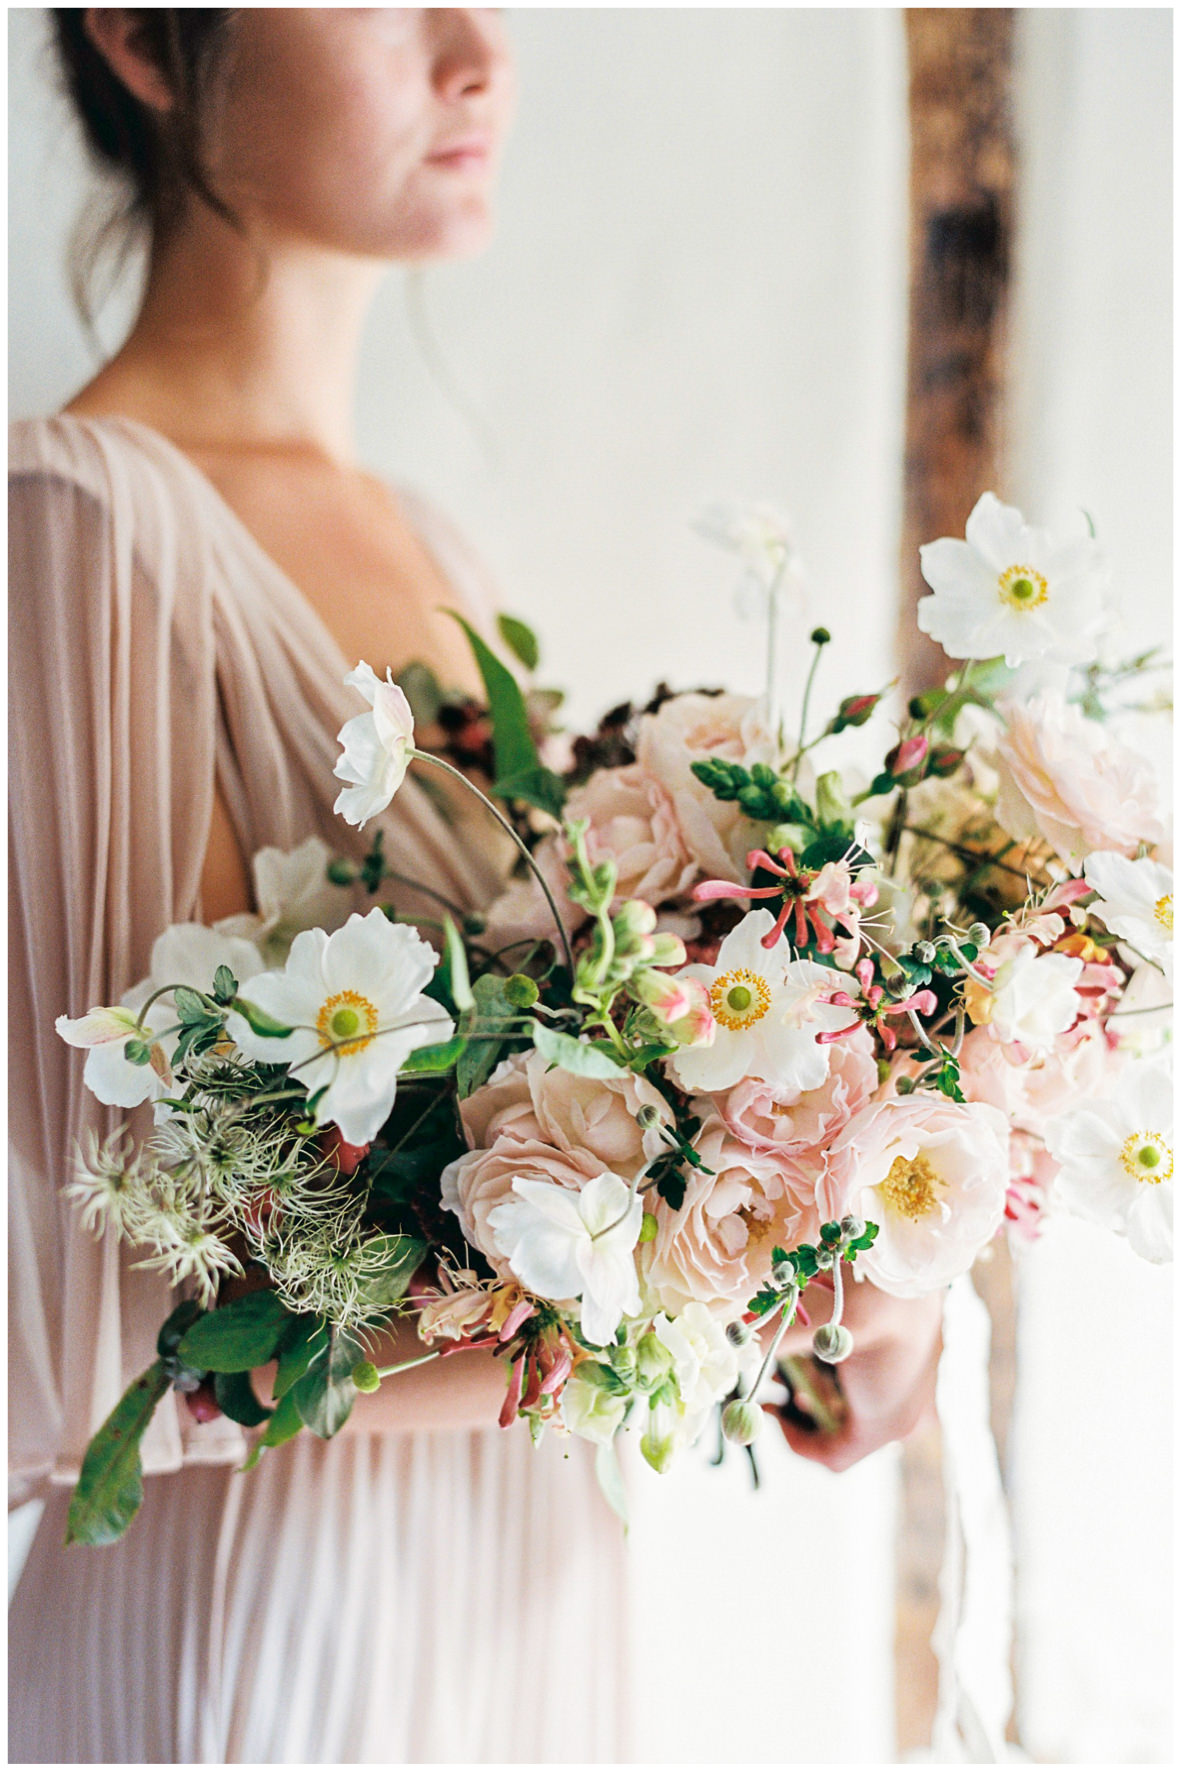 Lucy Davenport Photography, Once Wed, Home Creations, The Wedding Stylist, Verity & Thyme, model, coloured wedding dress, florals, bouquet,